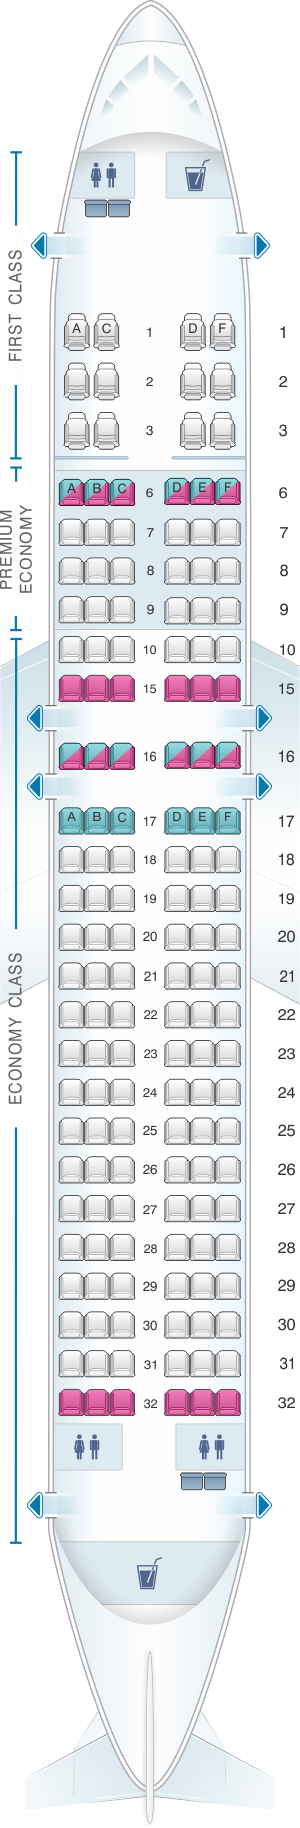 Seat map for Alaska Airlines - Horizon Air Airbus A320 214 sharklet retrofit